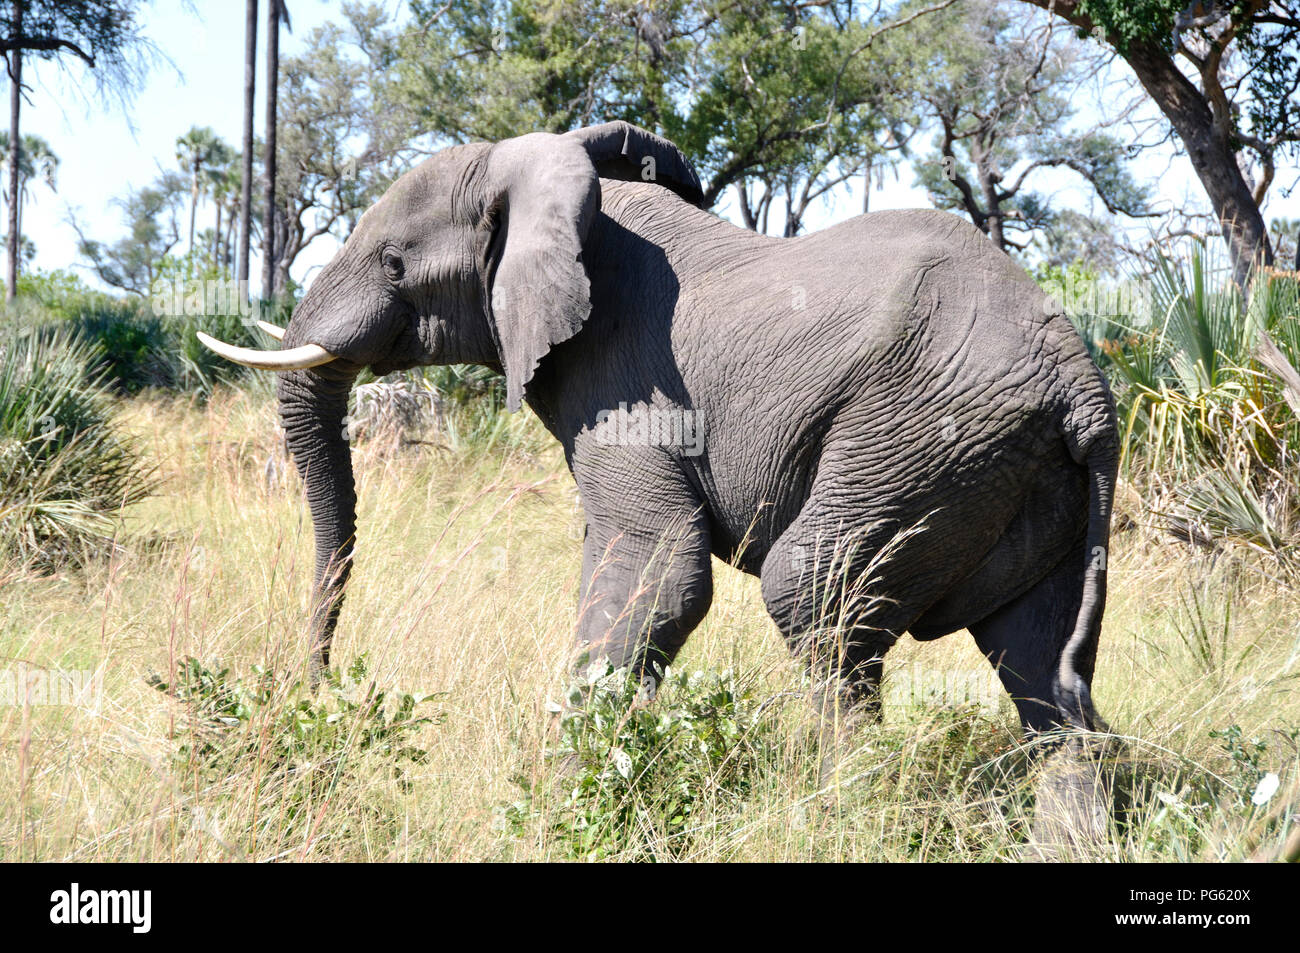 Botswana: Elephant in the Okavango-Delta swamps - Stock Image